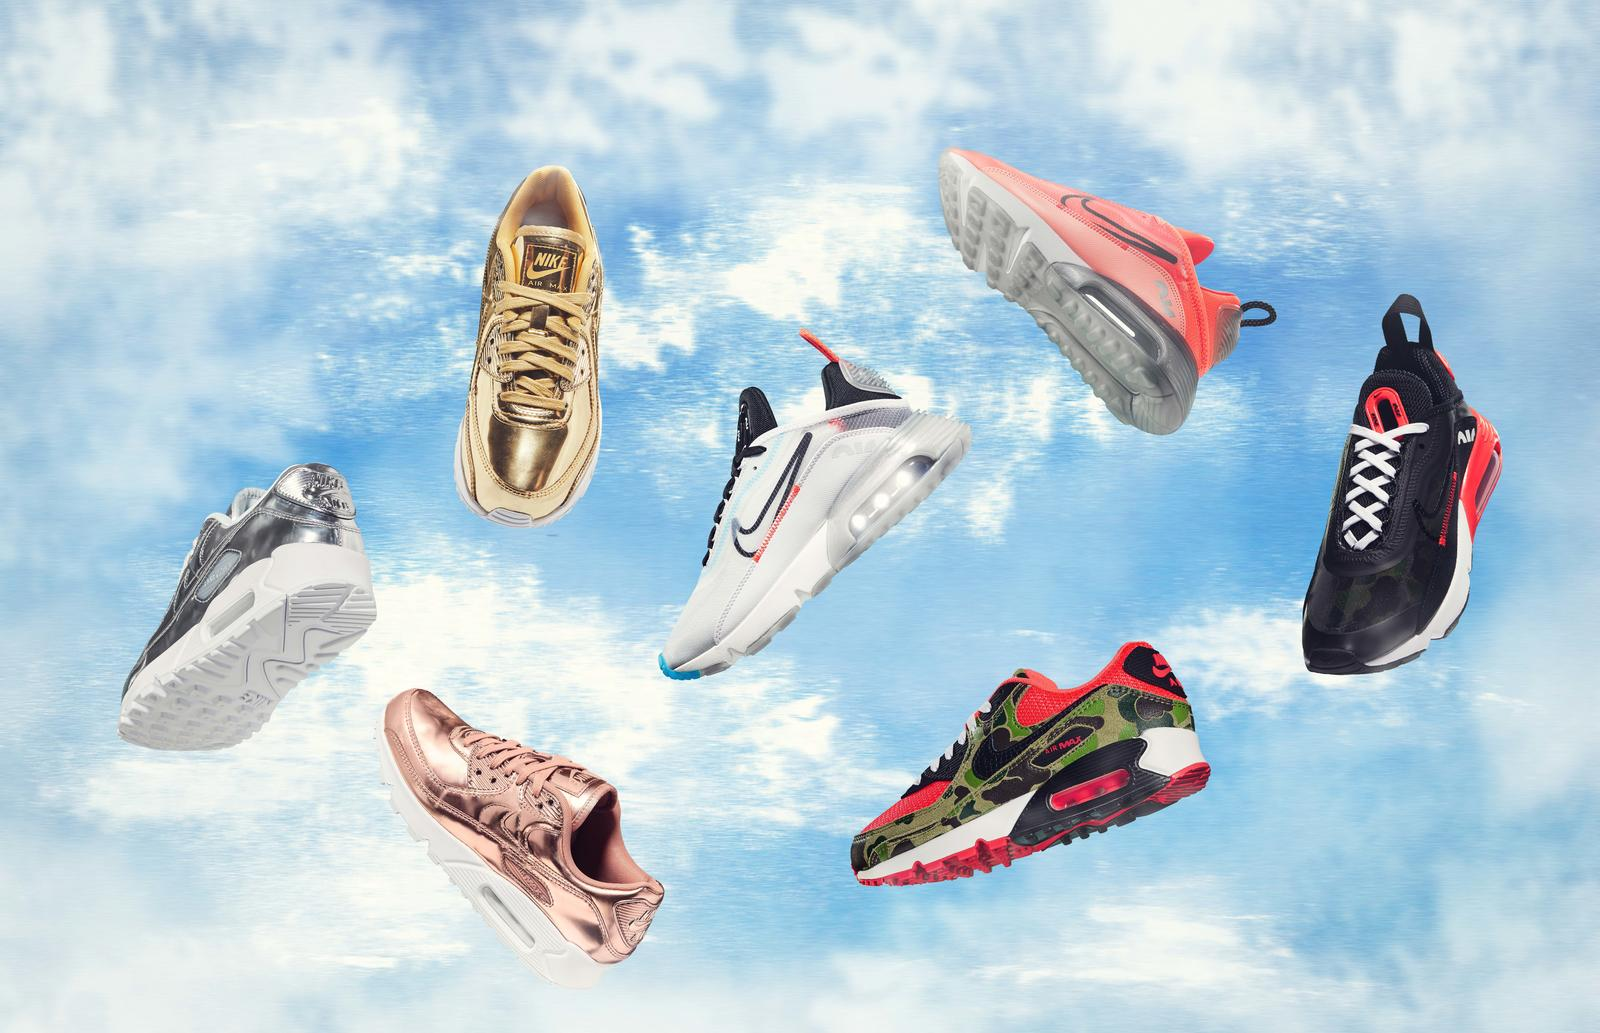 Sneak a peek at Nike's Air Max Day 2020 releases